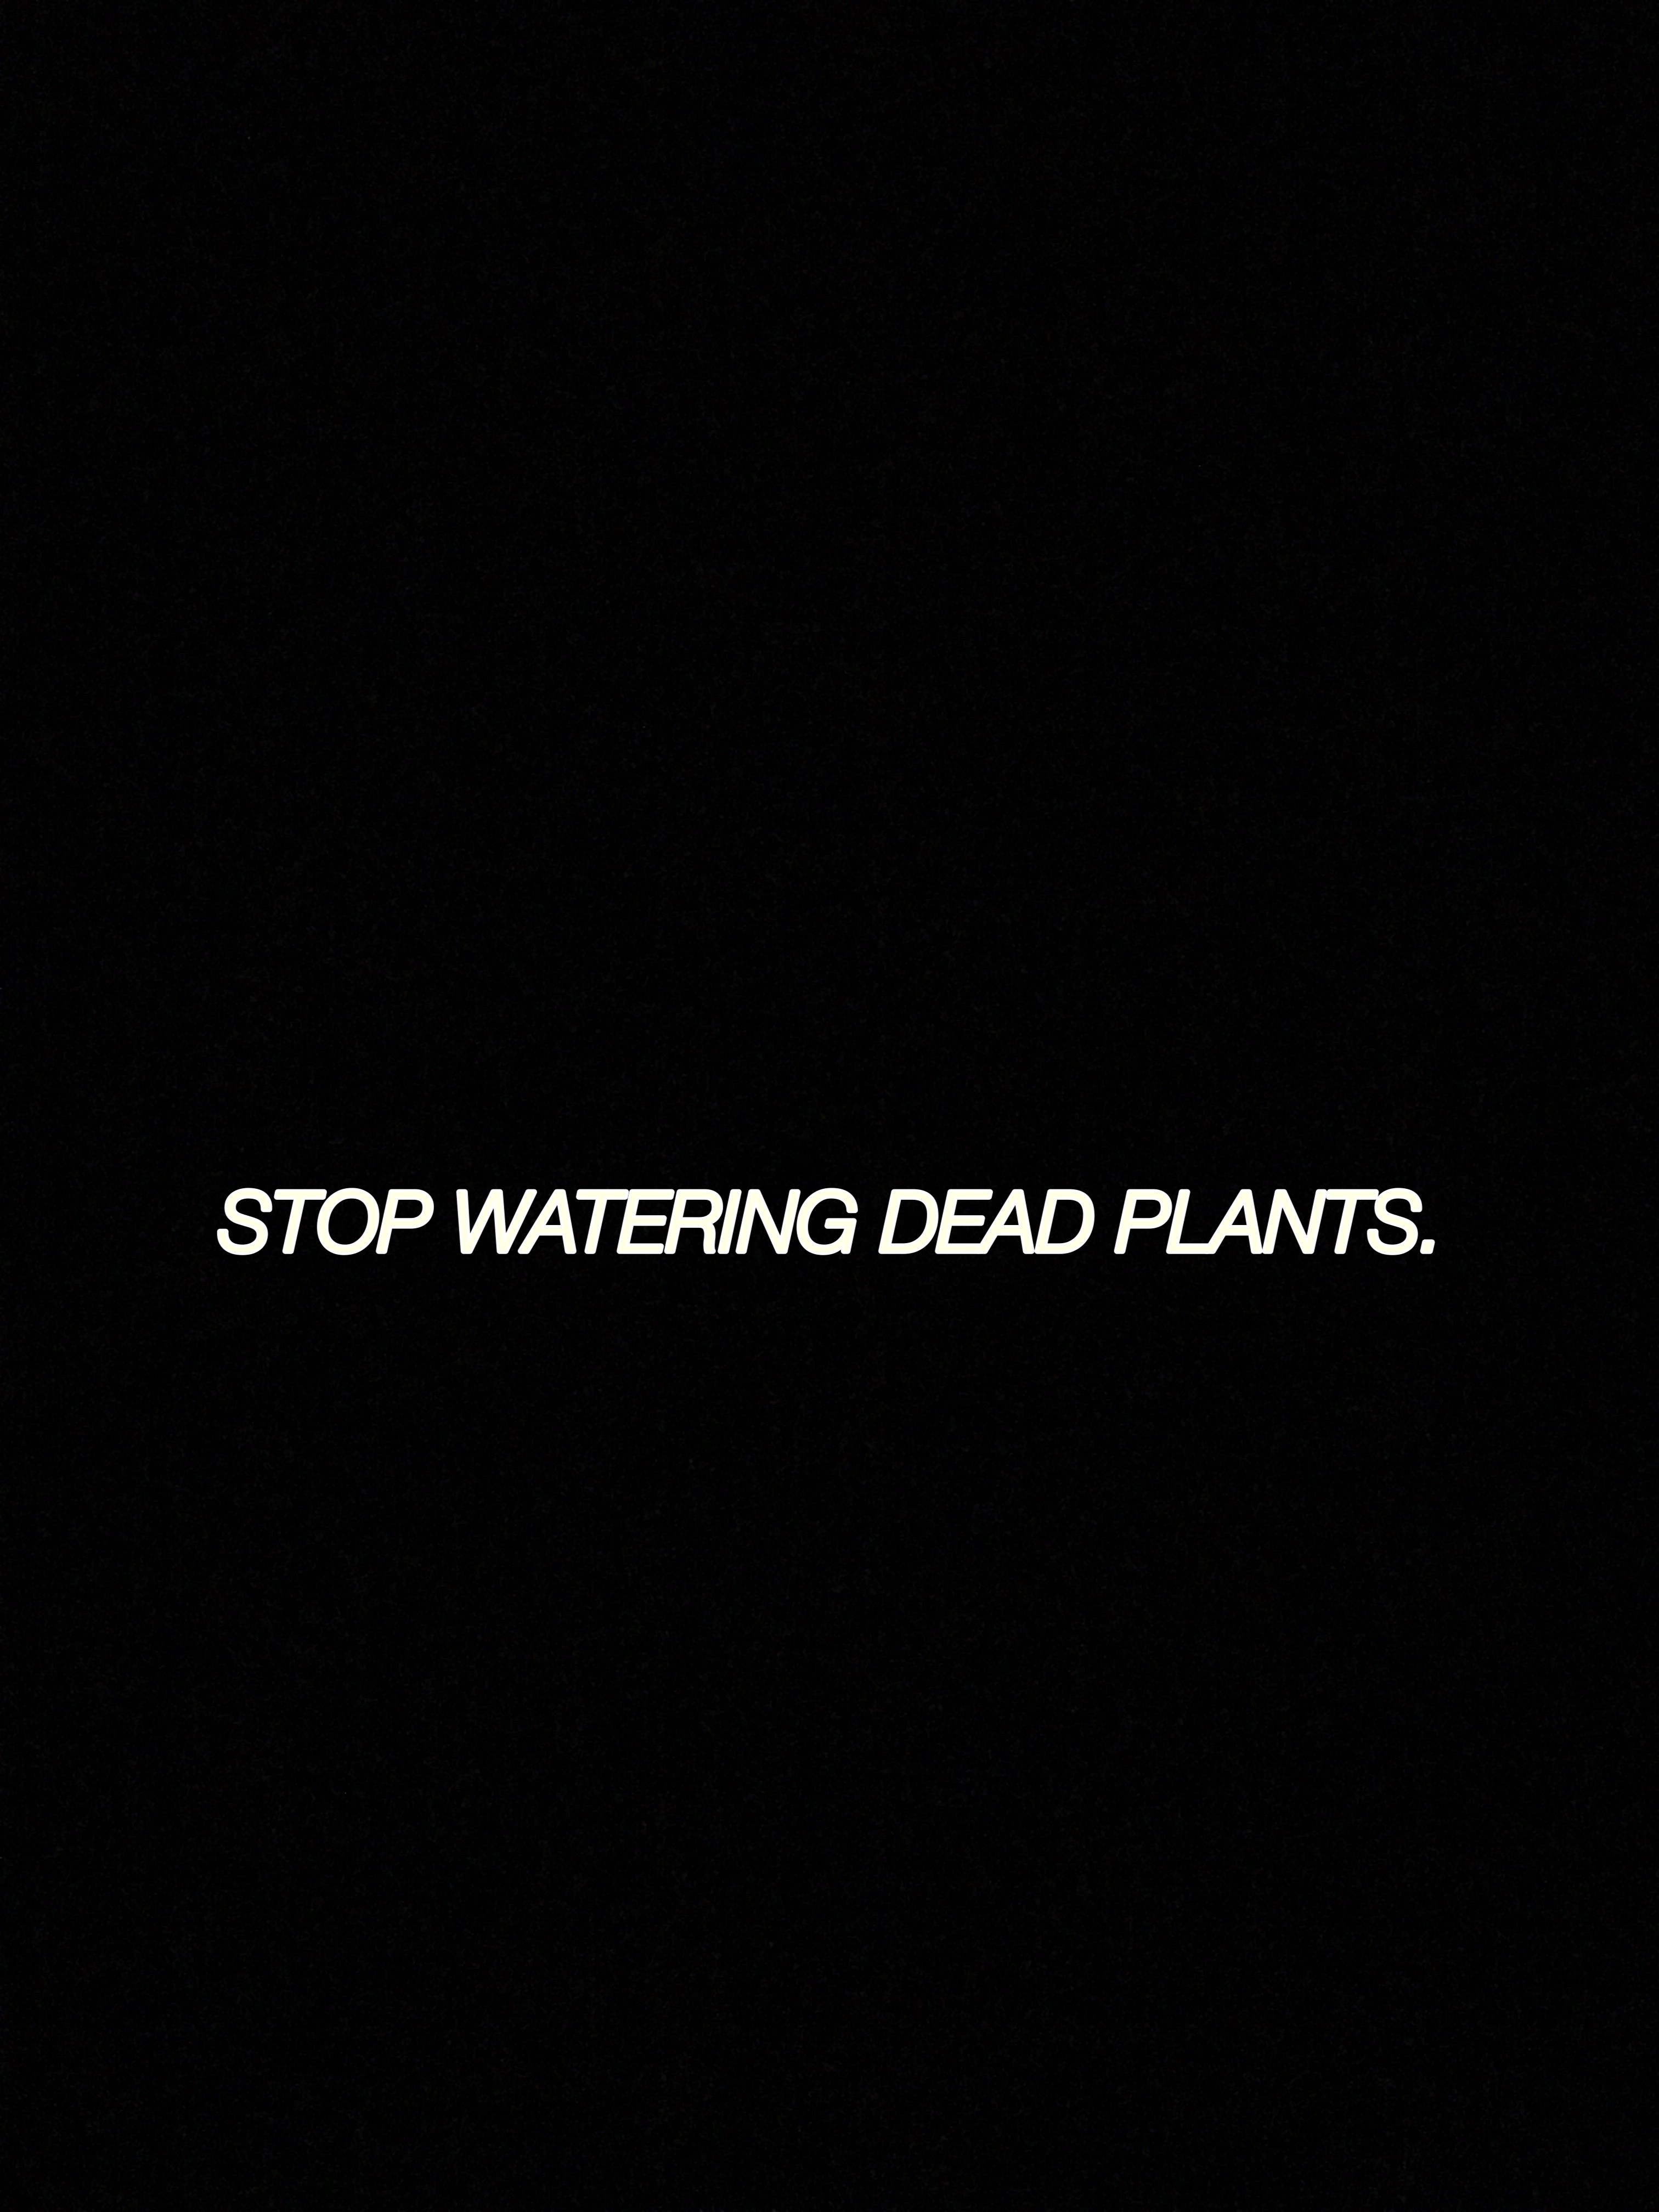 a note to self: you need to stop watering the dead plants in